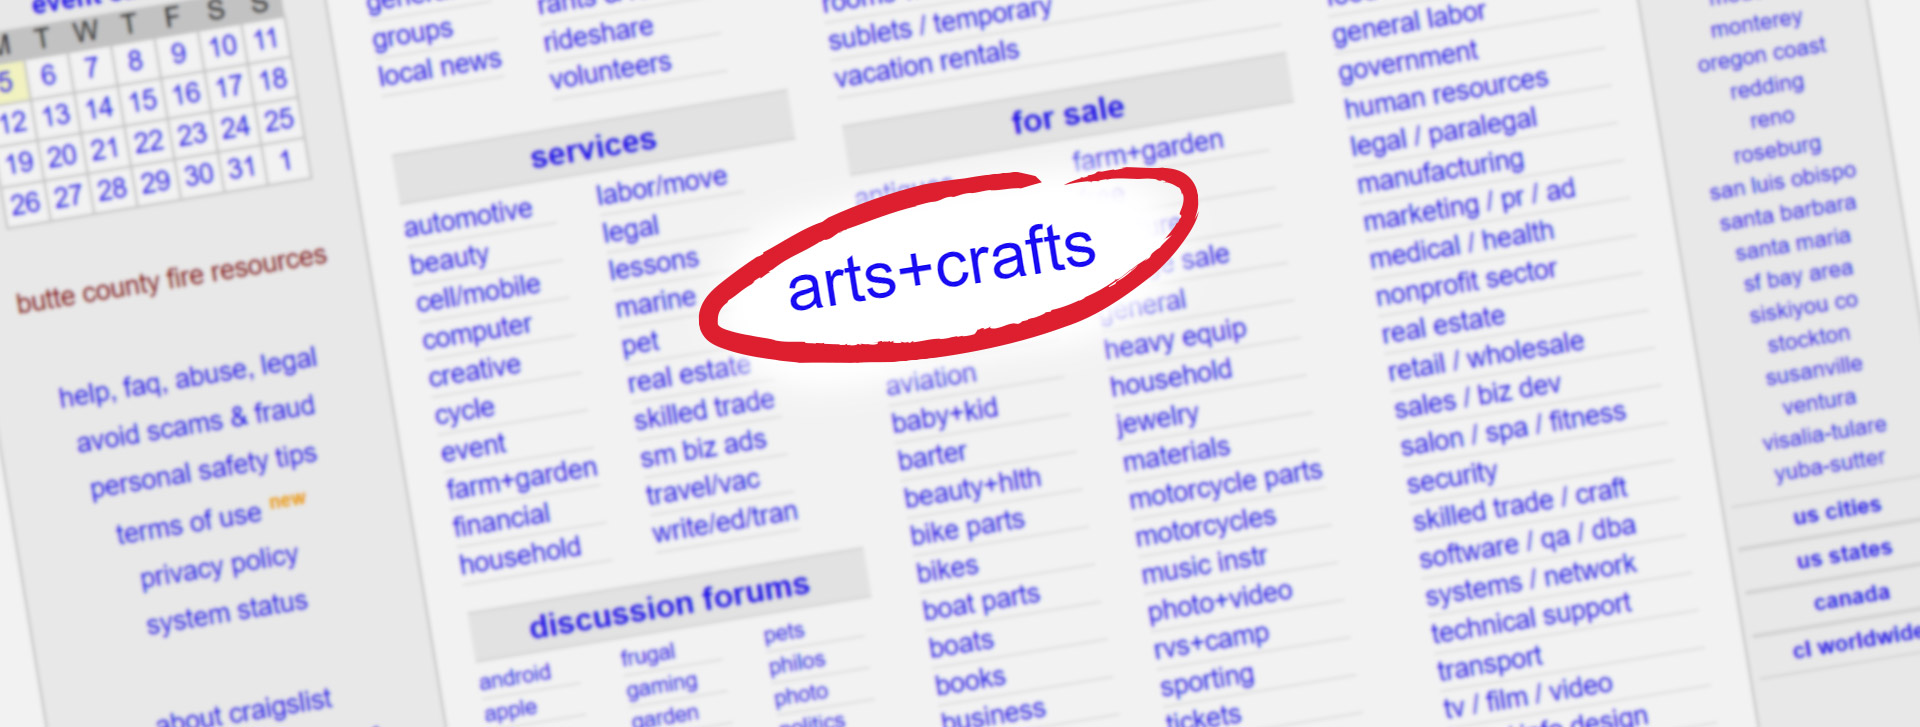 Craigslist Williamsburg Va Our specialists are focused on giving you superior customer service, and we work hard to provide the. cragslist and job search